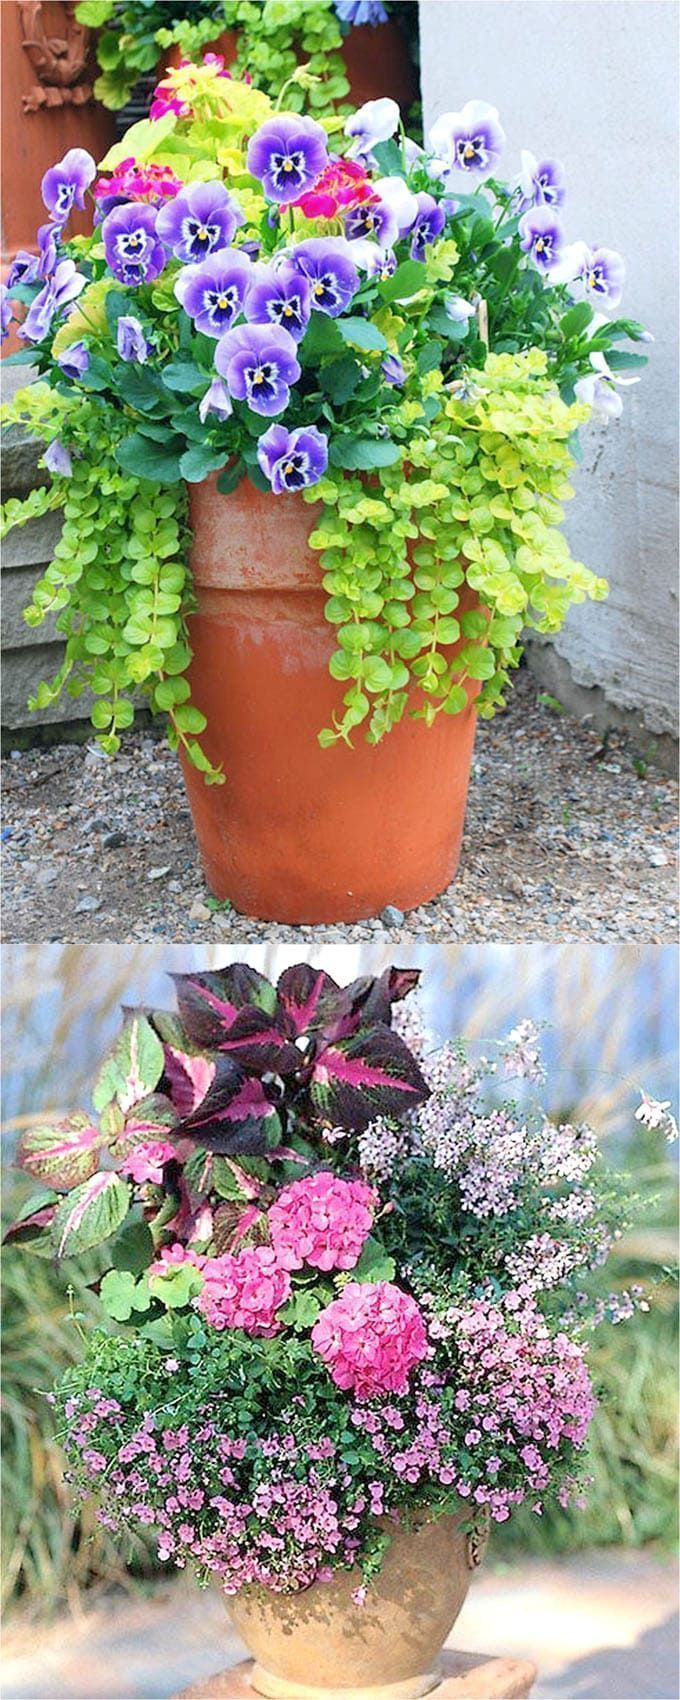 Colorful Flower Gardening In Pots Made Easy With 38 Best Designer Plant List For Each Container And Sun Vs Shade Locations Grow A Beautiful Garden